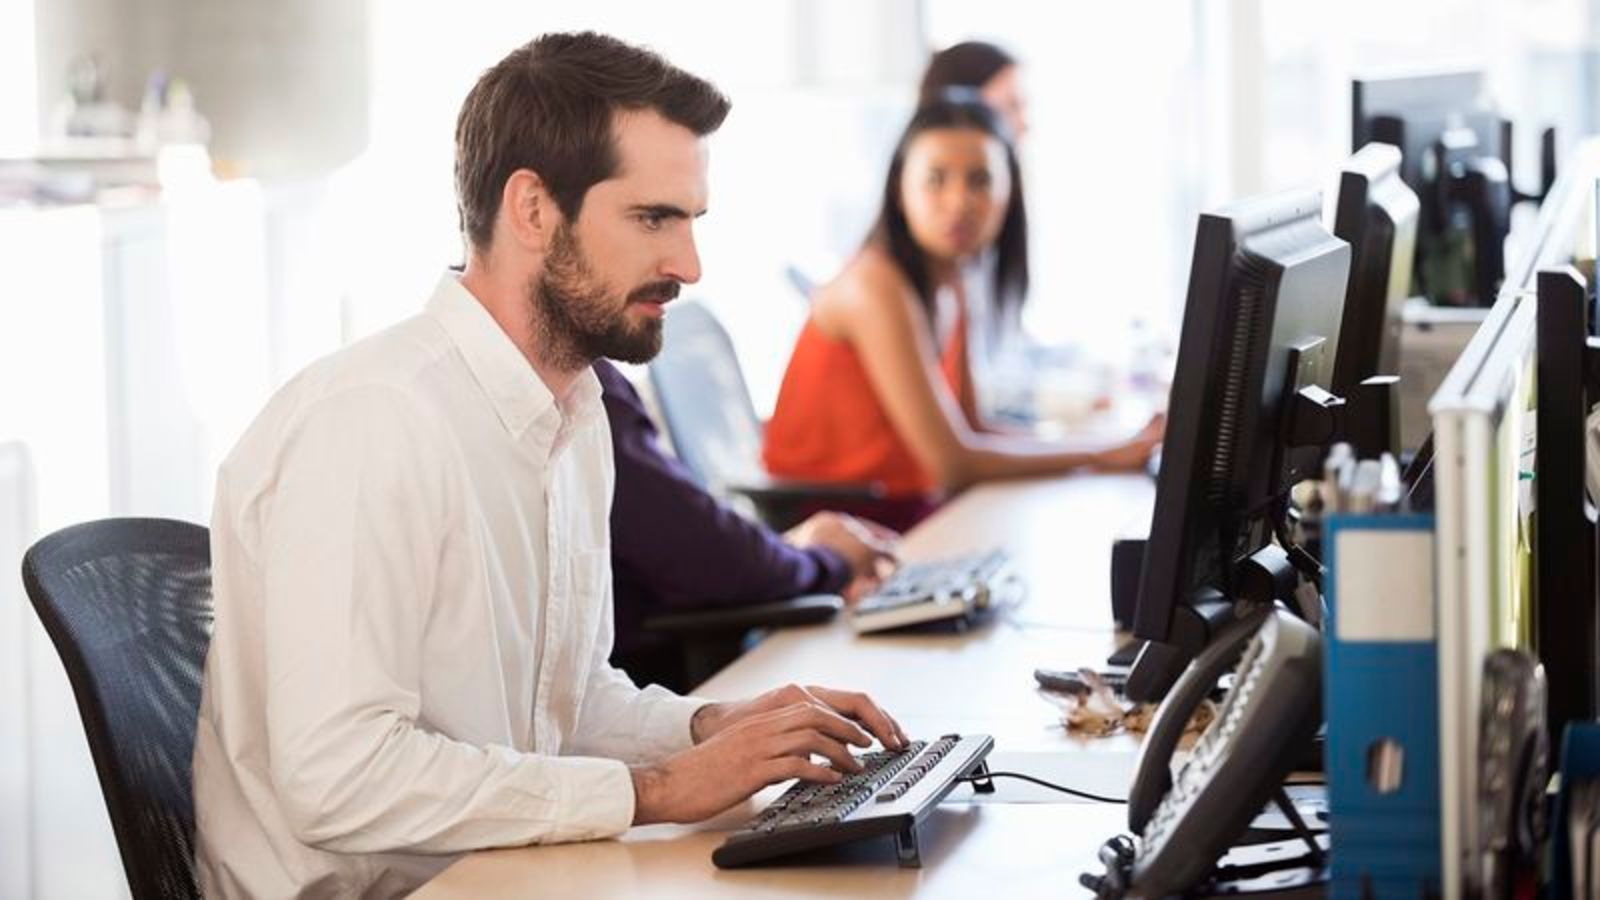 Coworker Loudly Typing Away Like 1930s Cub Reporter Chasing Hot Lead https://t.co/gKY6tJkNlm https://t.co/hdNPn712My